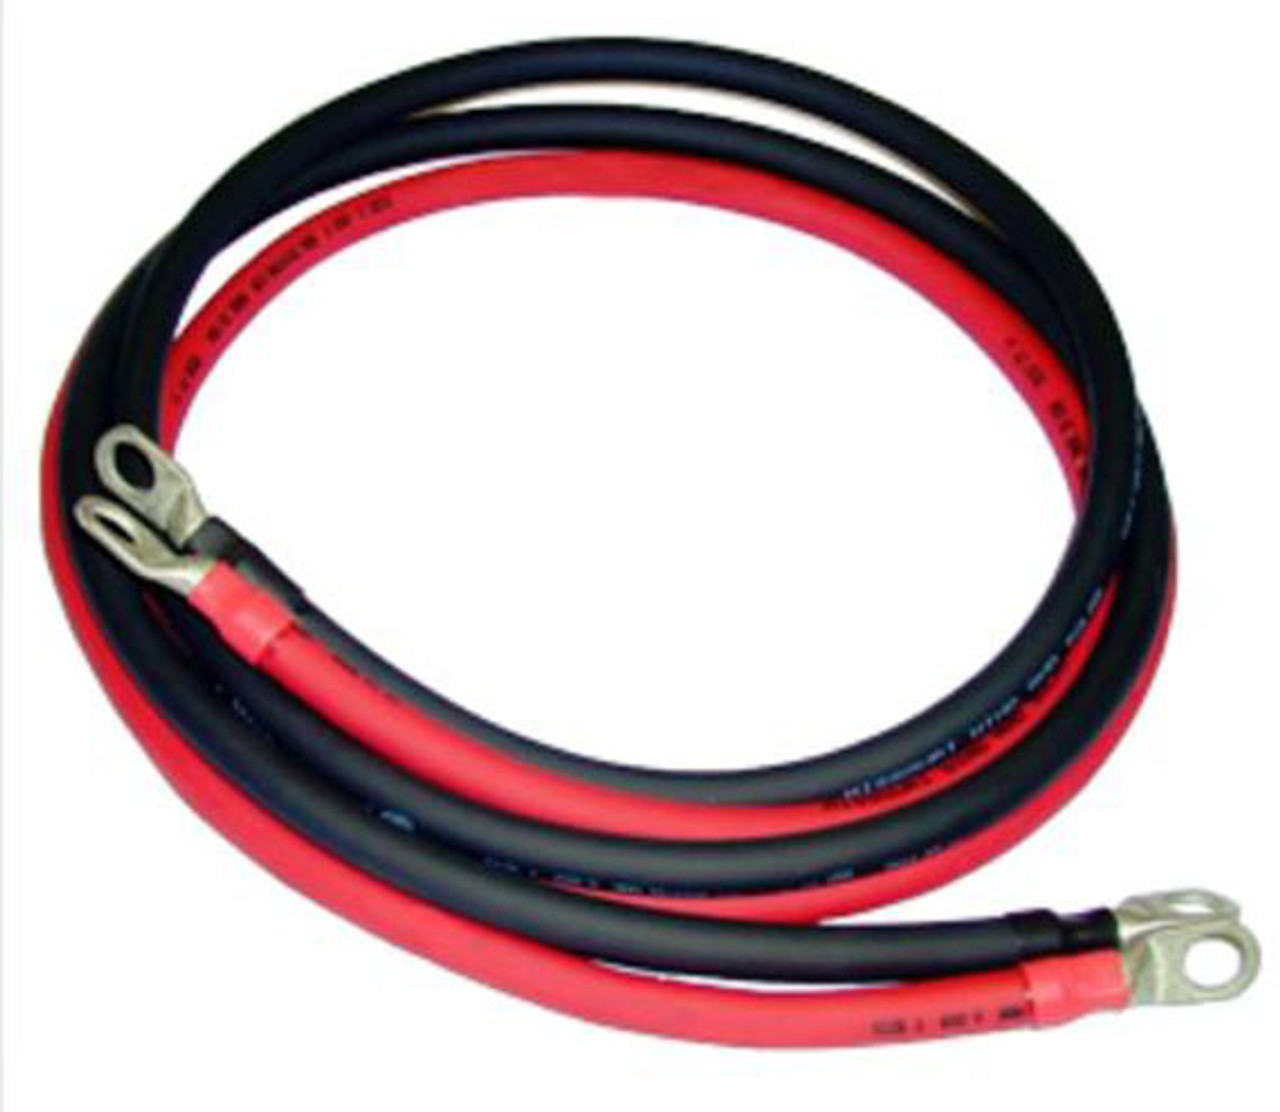 5 Ft Set of Cobra Flex 4/0 Inverter Cables